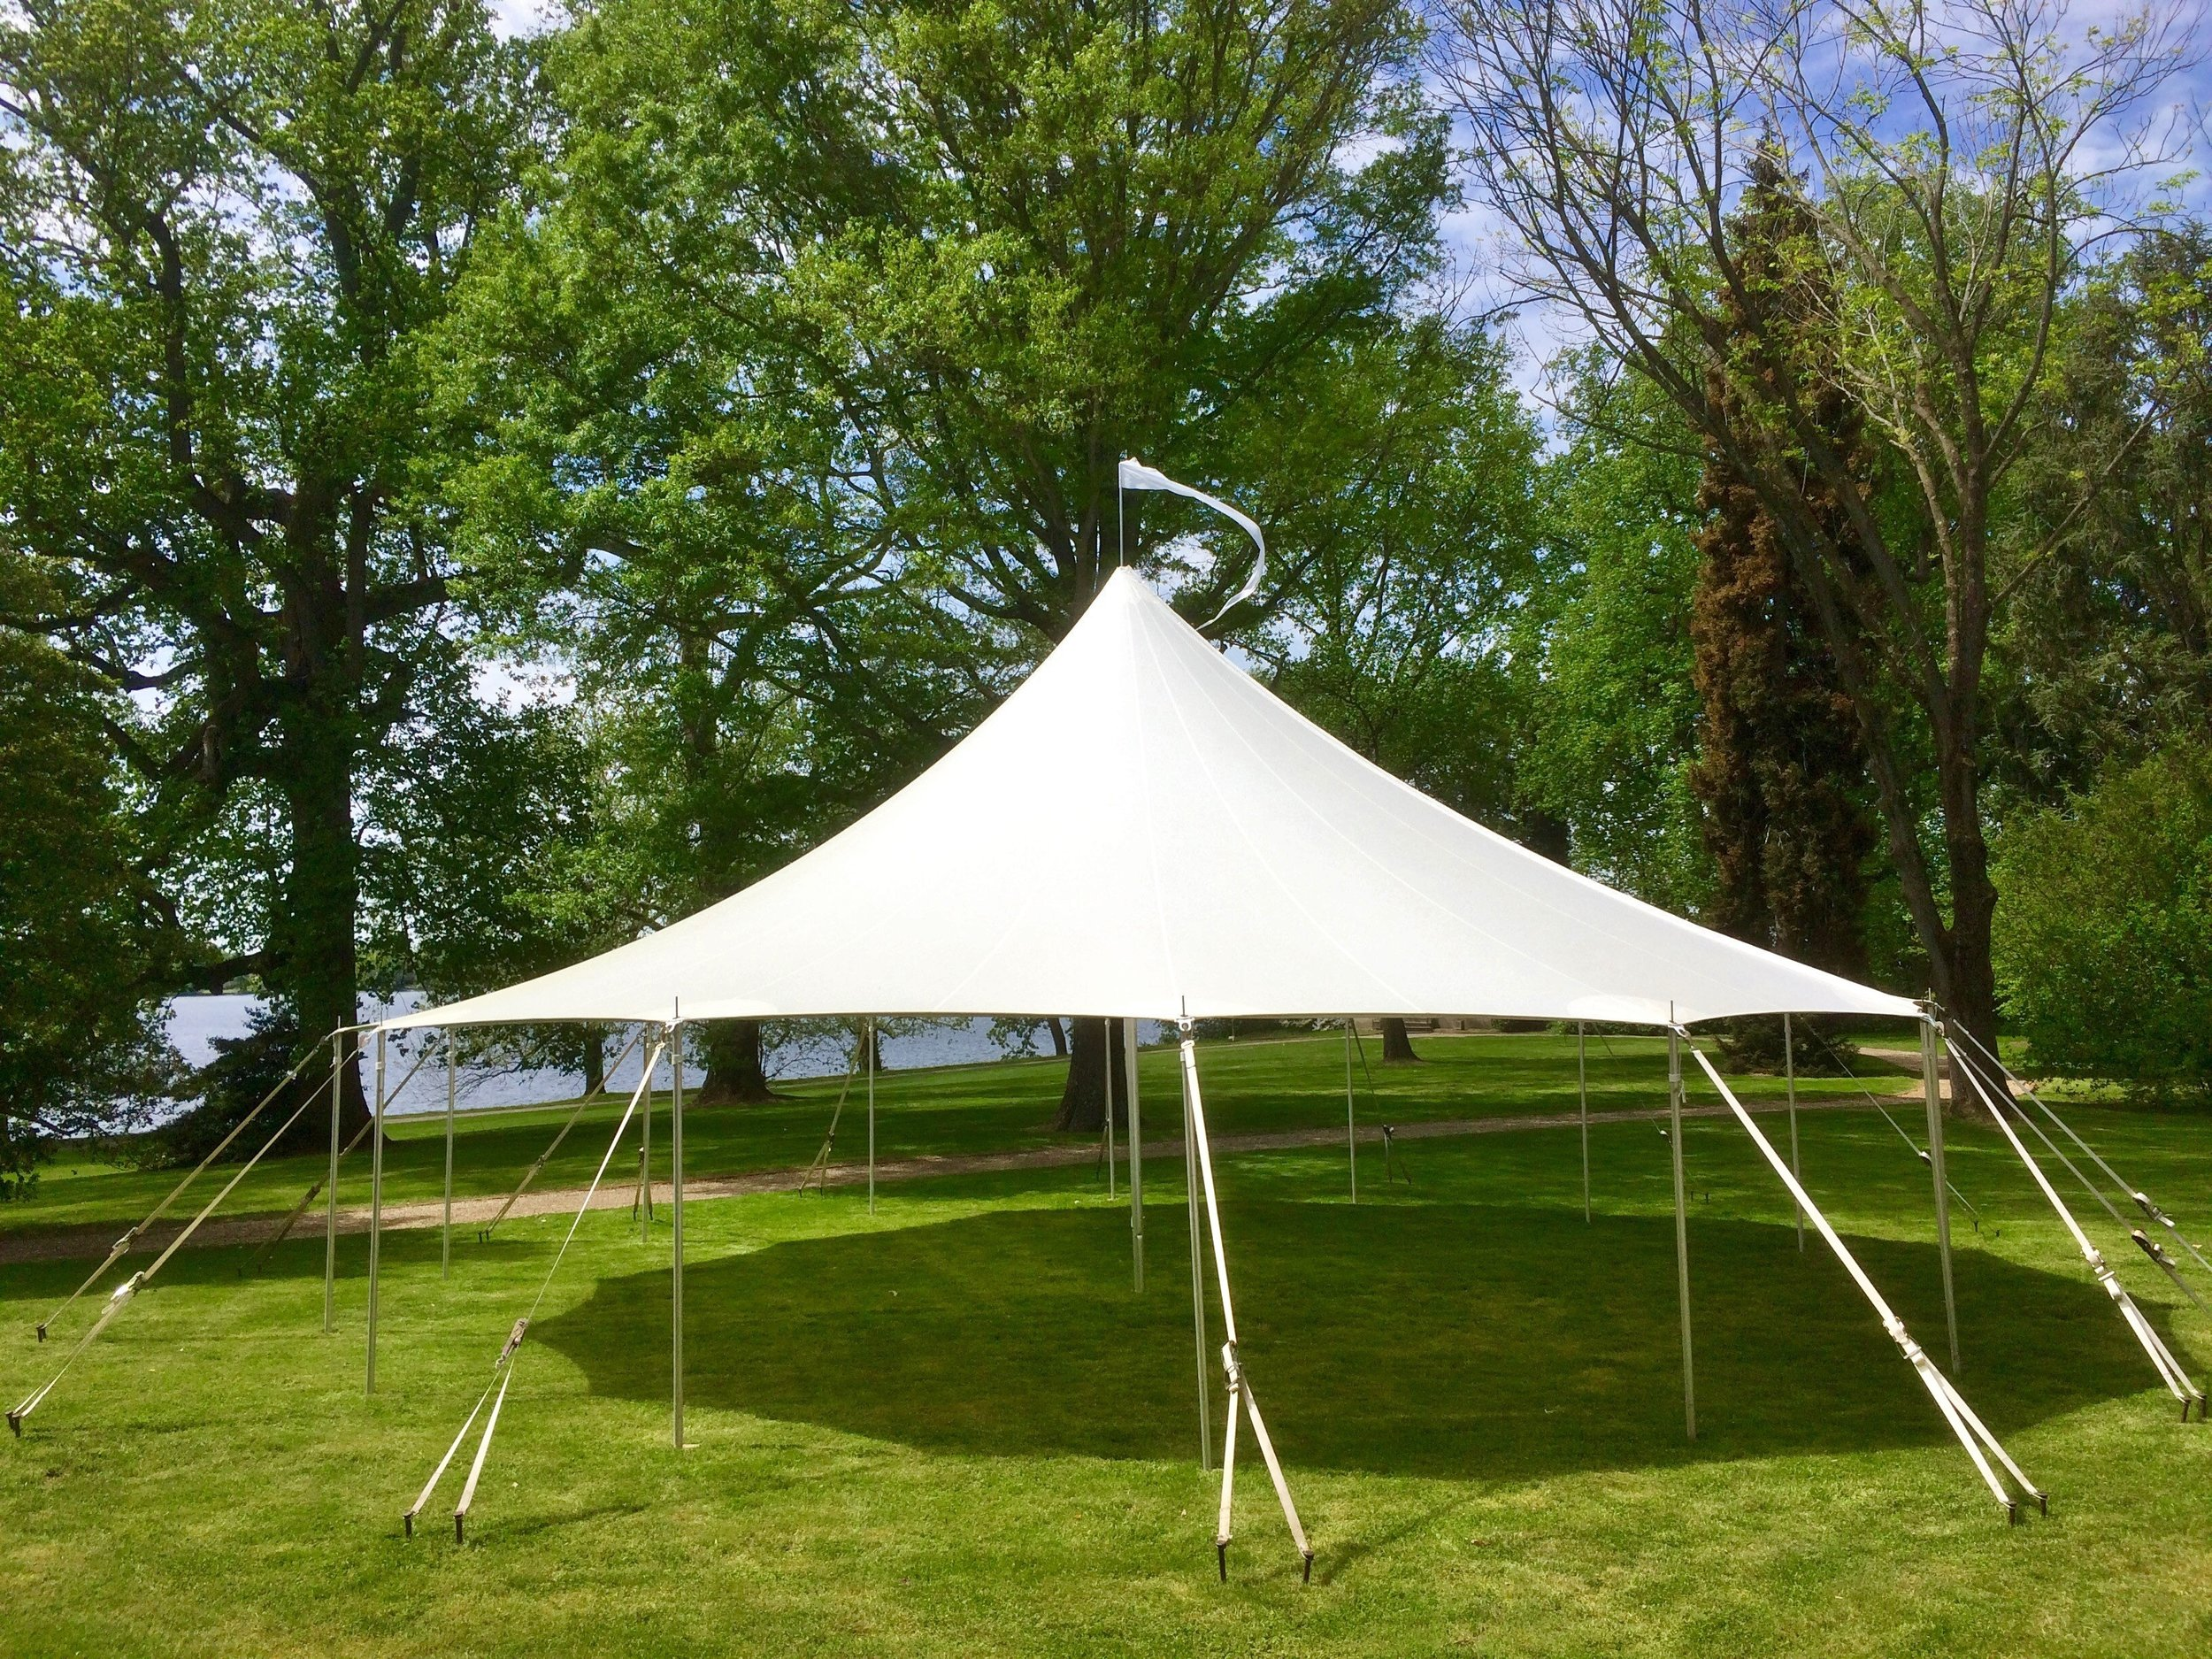 Beautiful sailcloth tent for rent in Cherry Hill, NJ